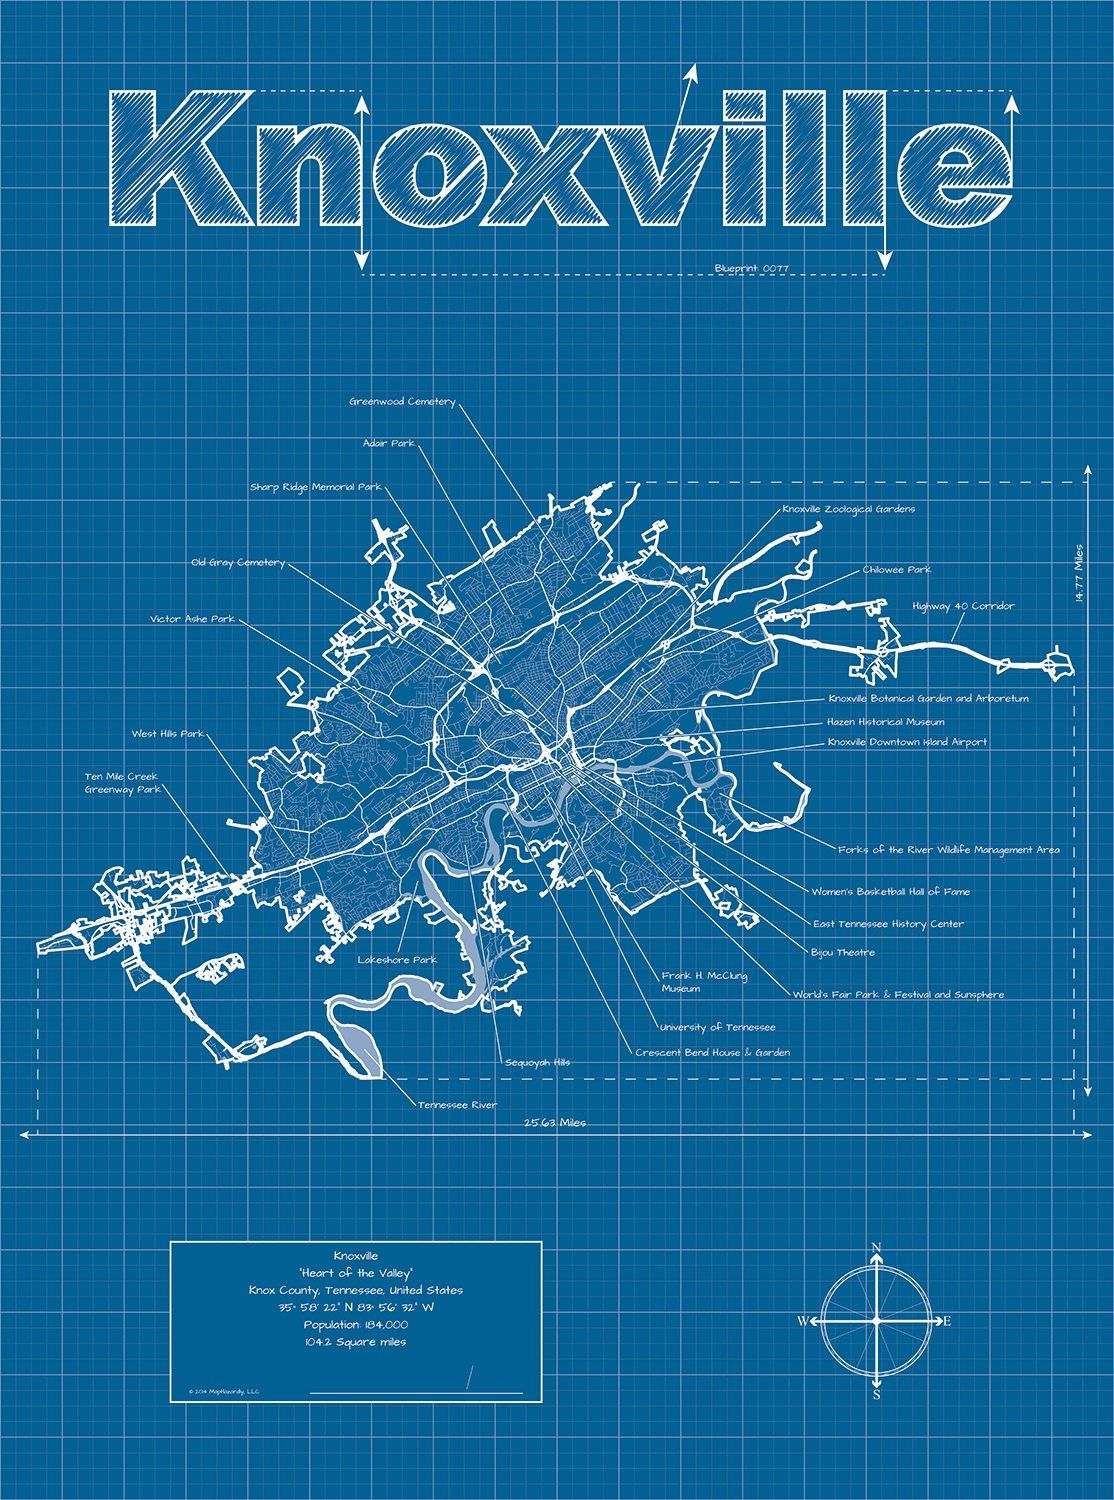 Blueprint Map of Knoxville, Tennessee, USA | MAPS | Map art ... on phoenix usa map, rochester usa map, allentown usa map, macon usa map, nashville usa map, wichita usa map, williamsburg usa map, seattle usa map, franklin usa map, atlanta usa map, springfield usa map, charlotte usa map, cheyenne usa map, cincinnati usa map, anchorage usa map, smoky mountains usa map, milwaukee usa map, columbia usa map, auburn usa map, pueblo usa map,